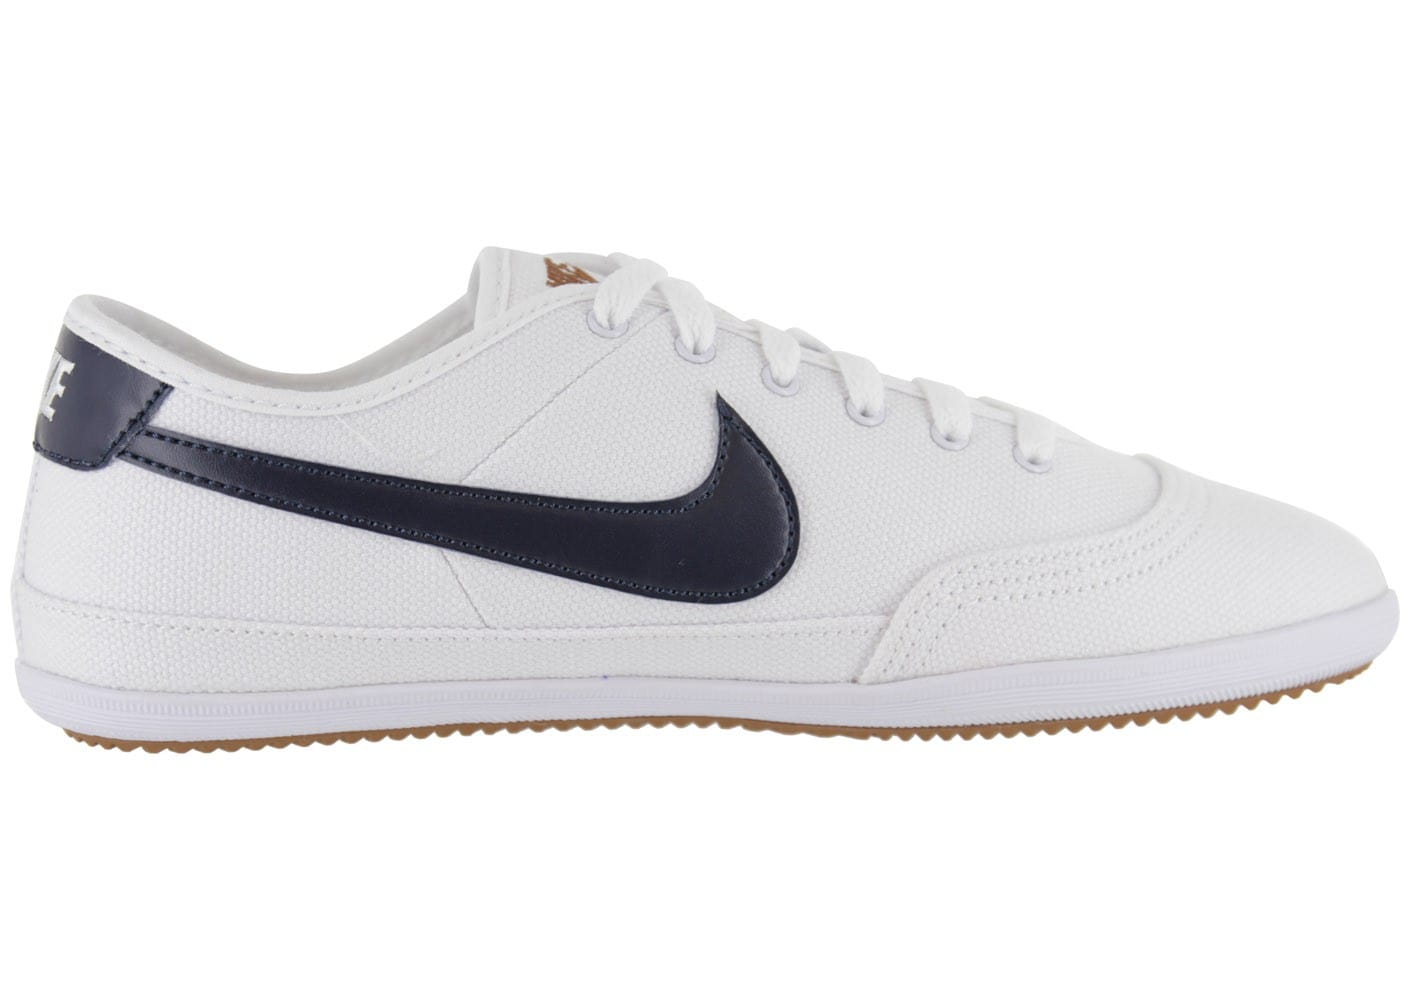 nike flash toile blanche chaussures homme chausport. Black Bedroom Furniture Sets. Home Design Ideas